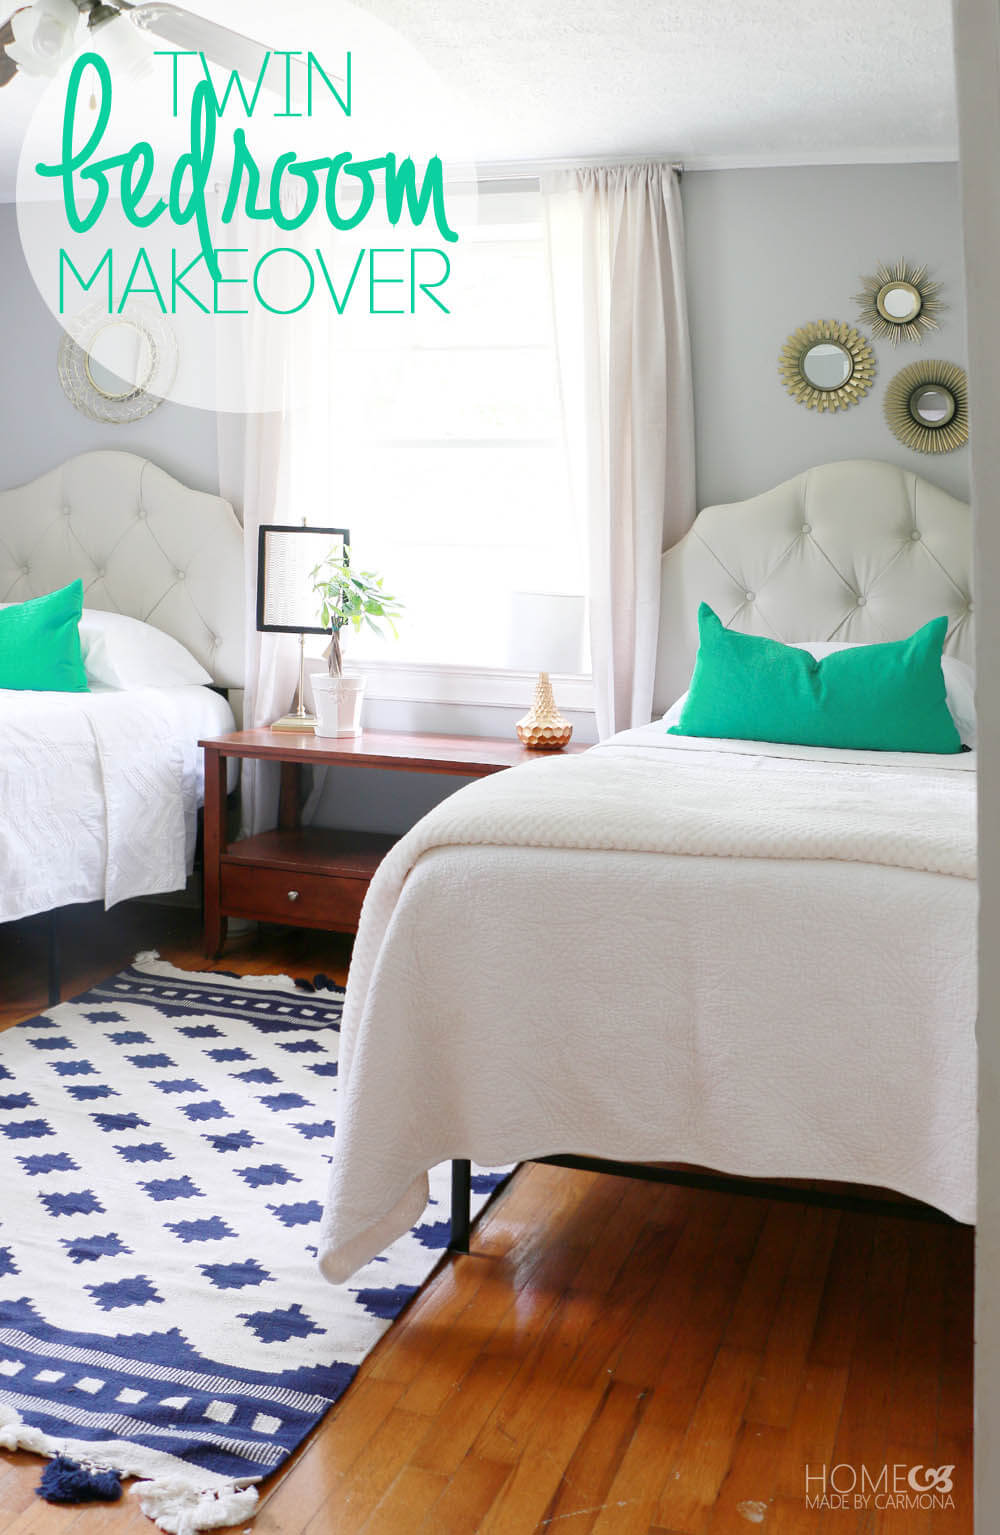 Twin Bedroom Makeover - cute room for teens